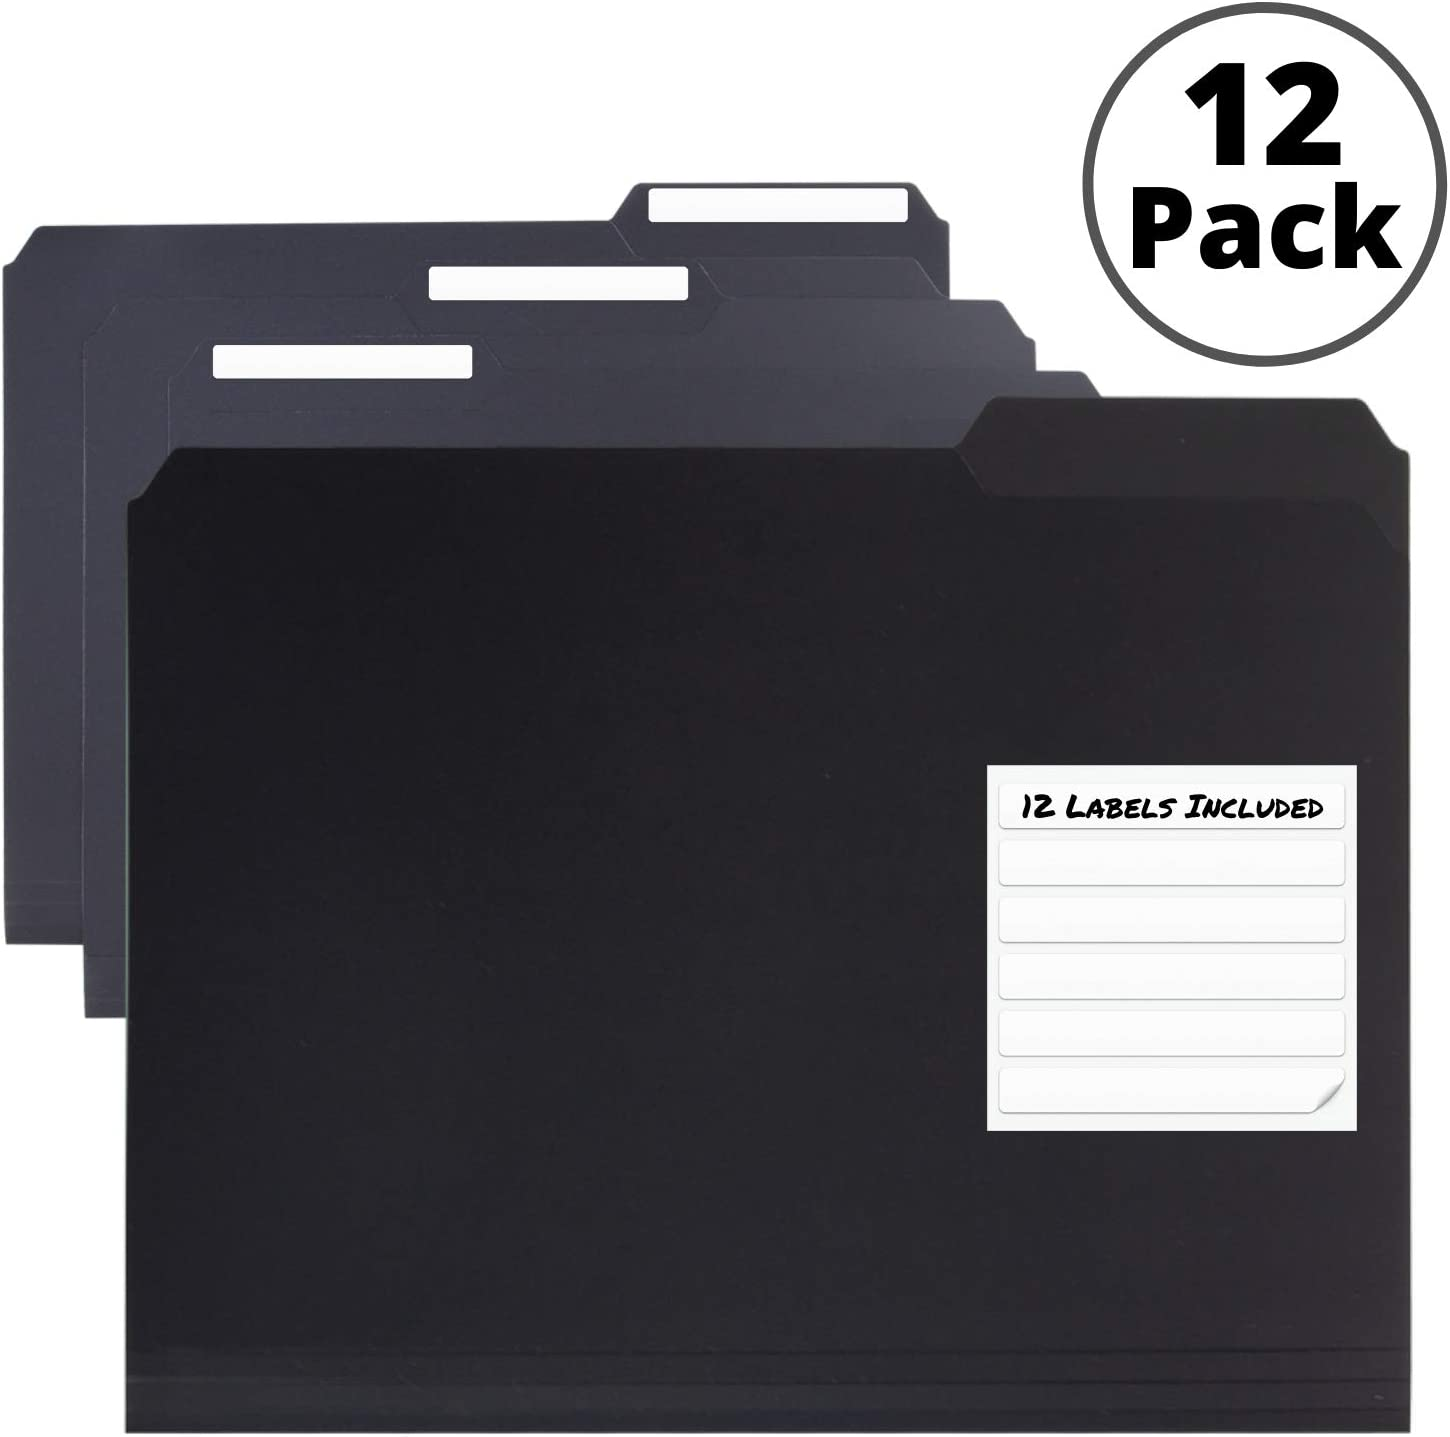 Black Plastic 3-TAB File Folders (12 Pack) Letter Size, Poly Folder, 1/3-Cut Tabs, Labels Included, Writable Erasable Top Tabs, Durable, Tear-Resistant, Acid-Free for Document Filing Storage